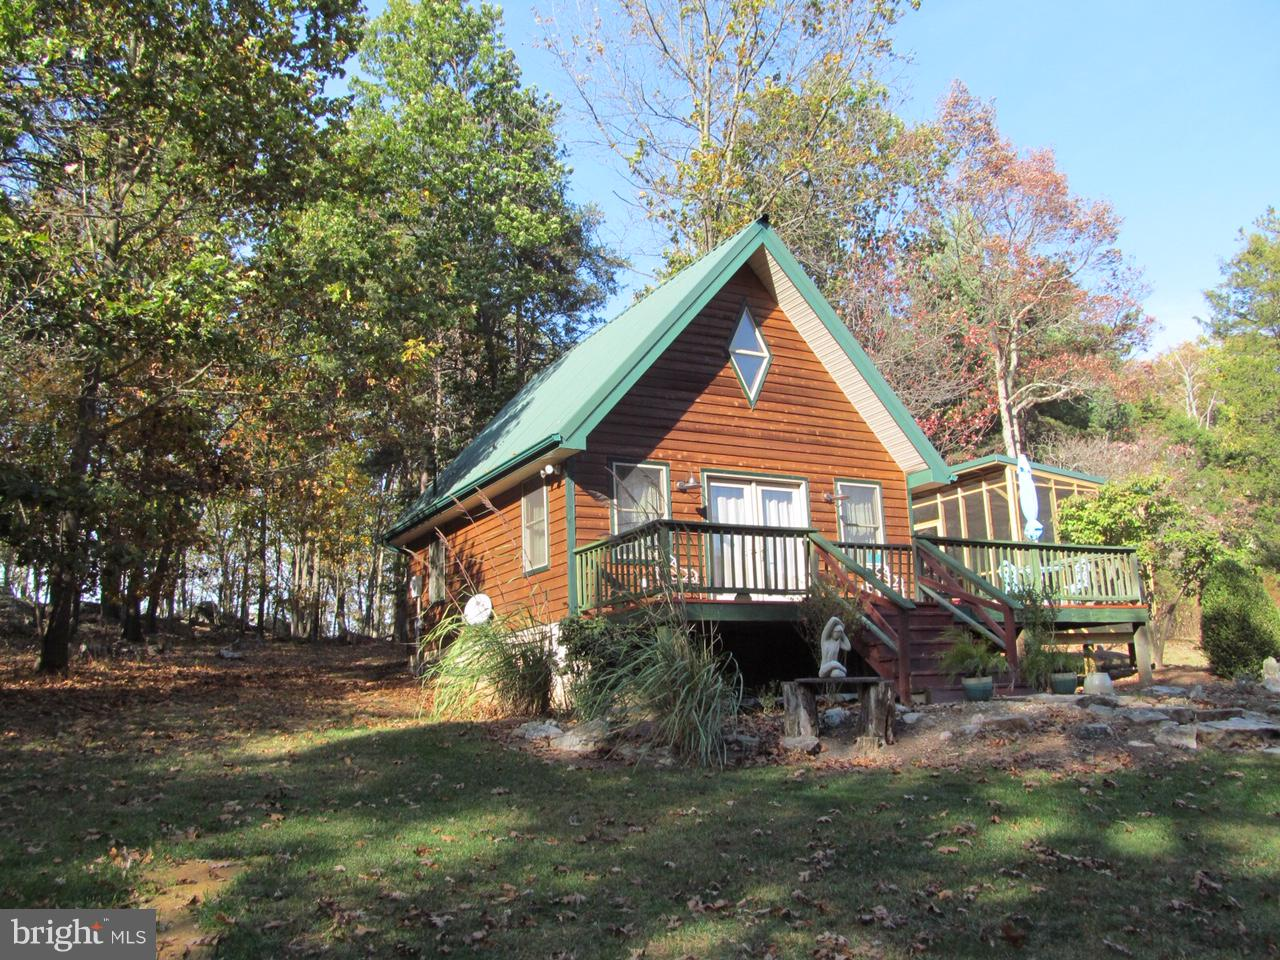 163 PLEASANT VALLEY DRIVE, LOST RIVER, WV 26810